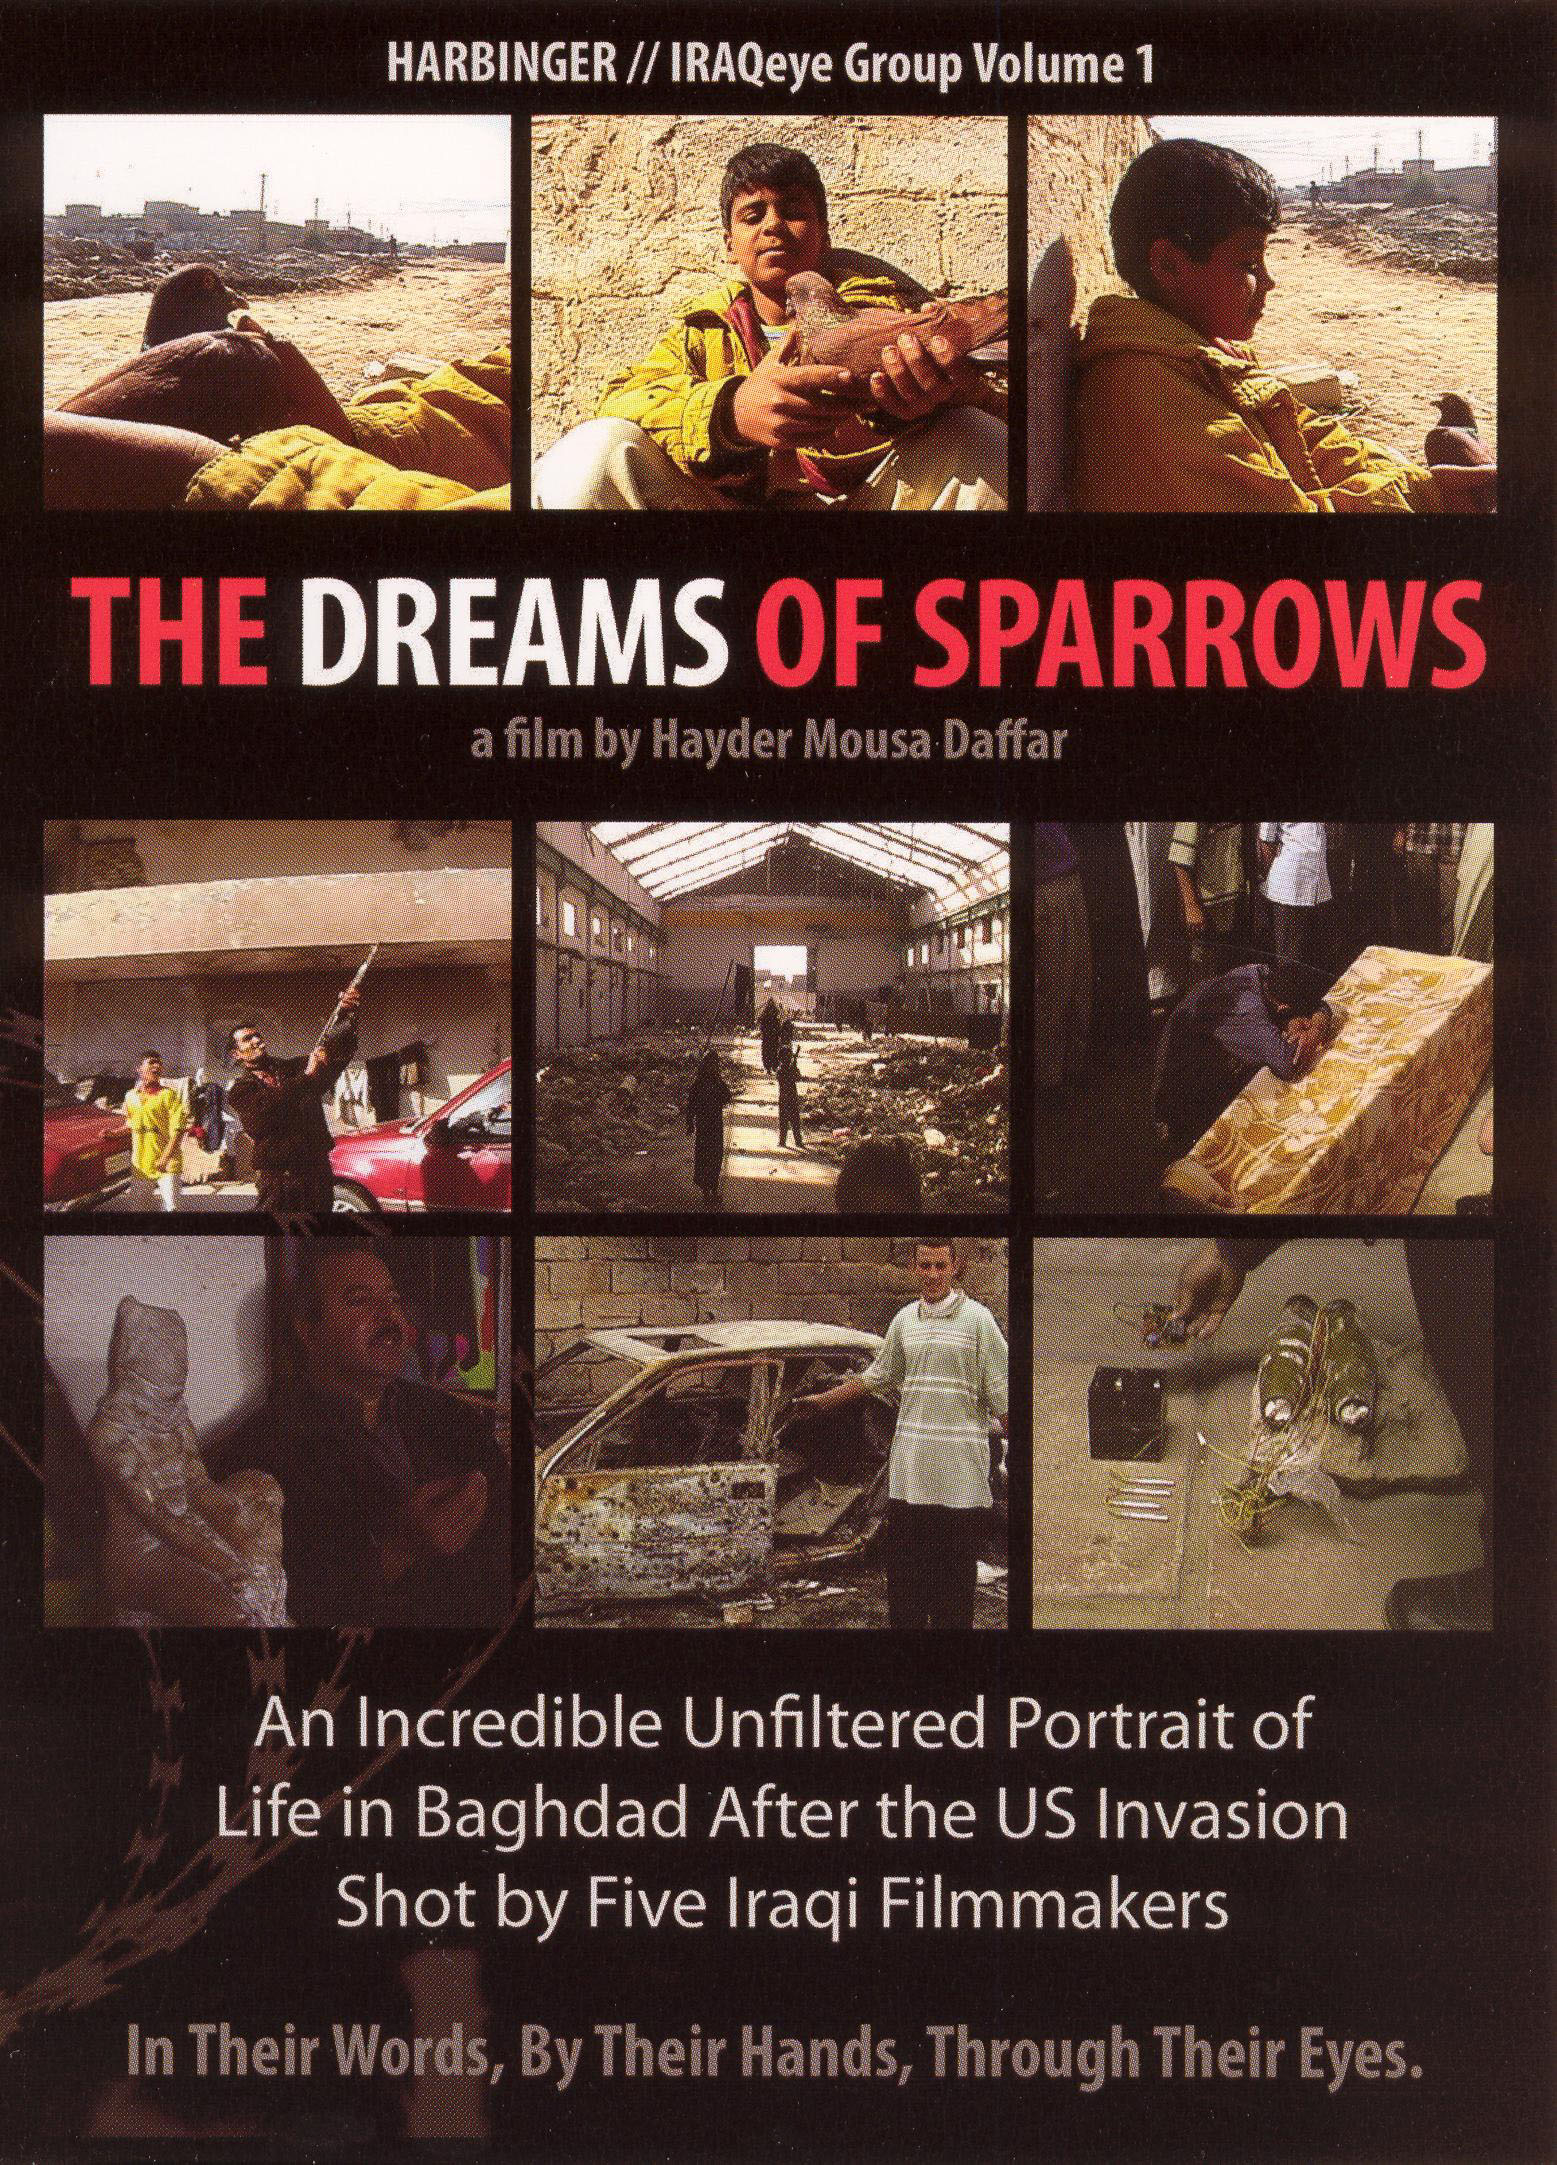 The Dreams of Sparrows (2004)